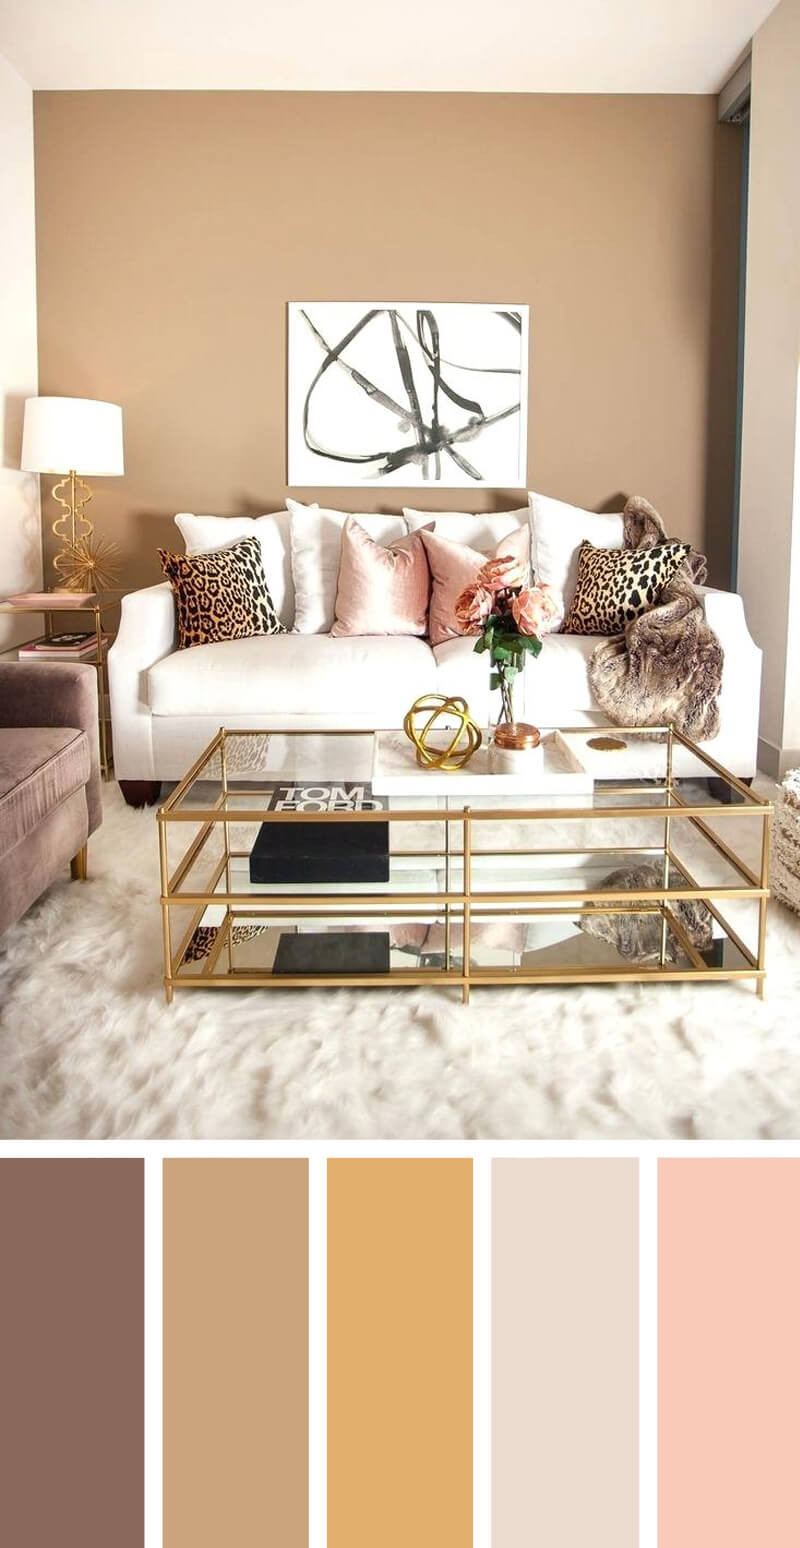 https://homebnc.com/homeimg/2017/08/007-living-room-color-scheme-ideas-color-harmony-homebnc.jpg